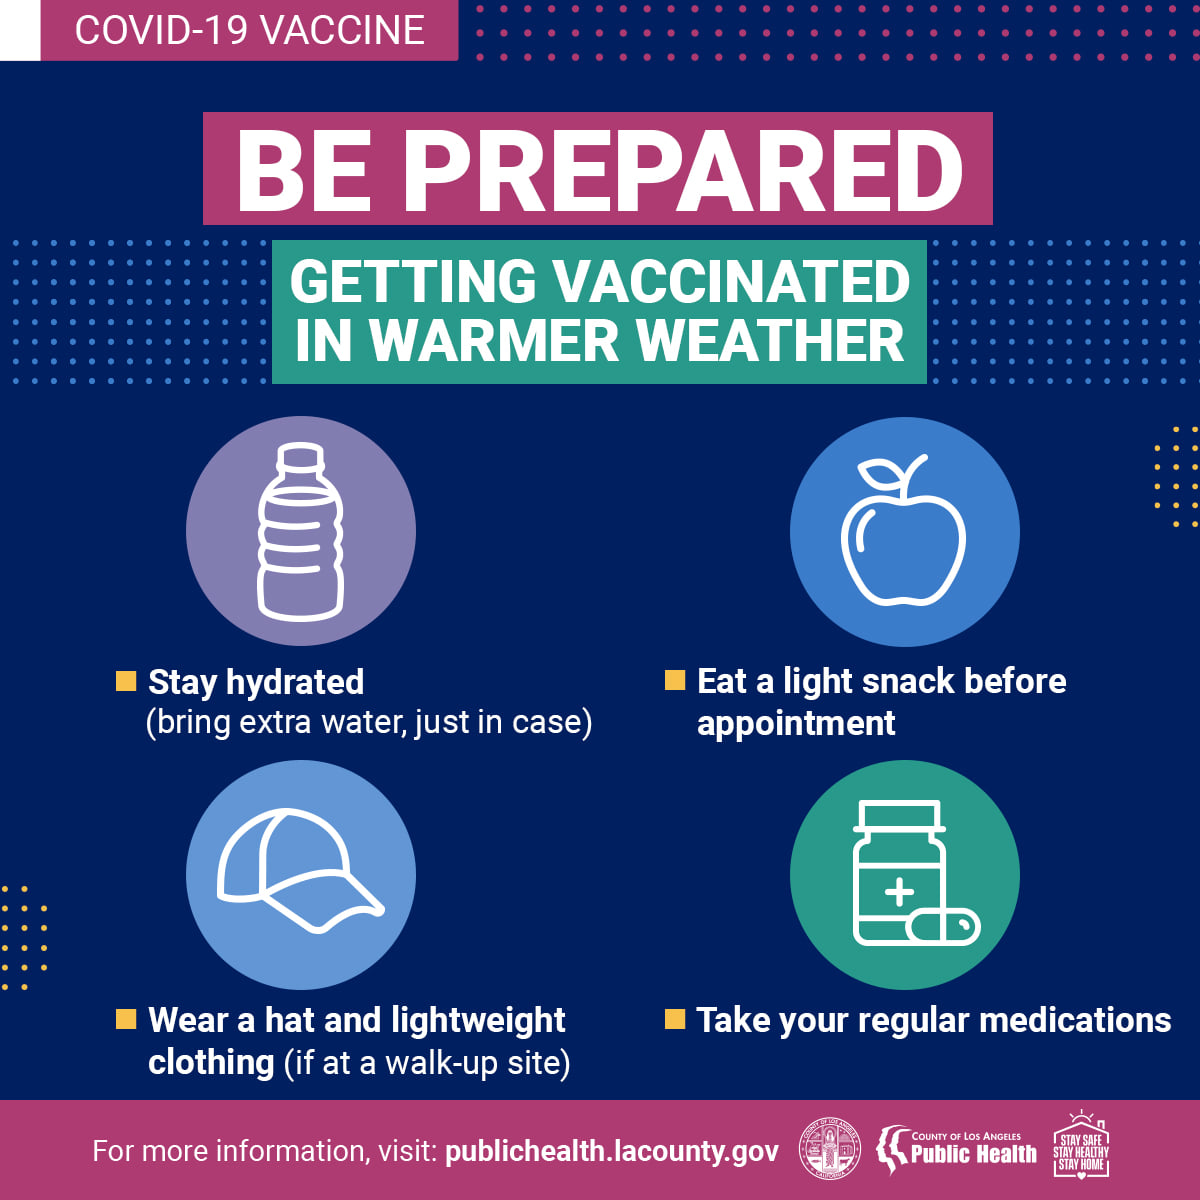 Getting Vaccinated in Warmer Weather